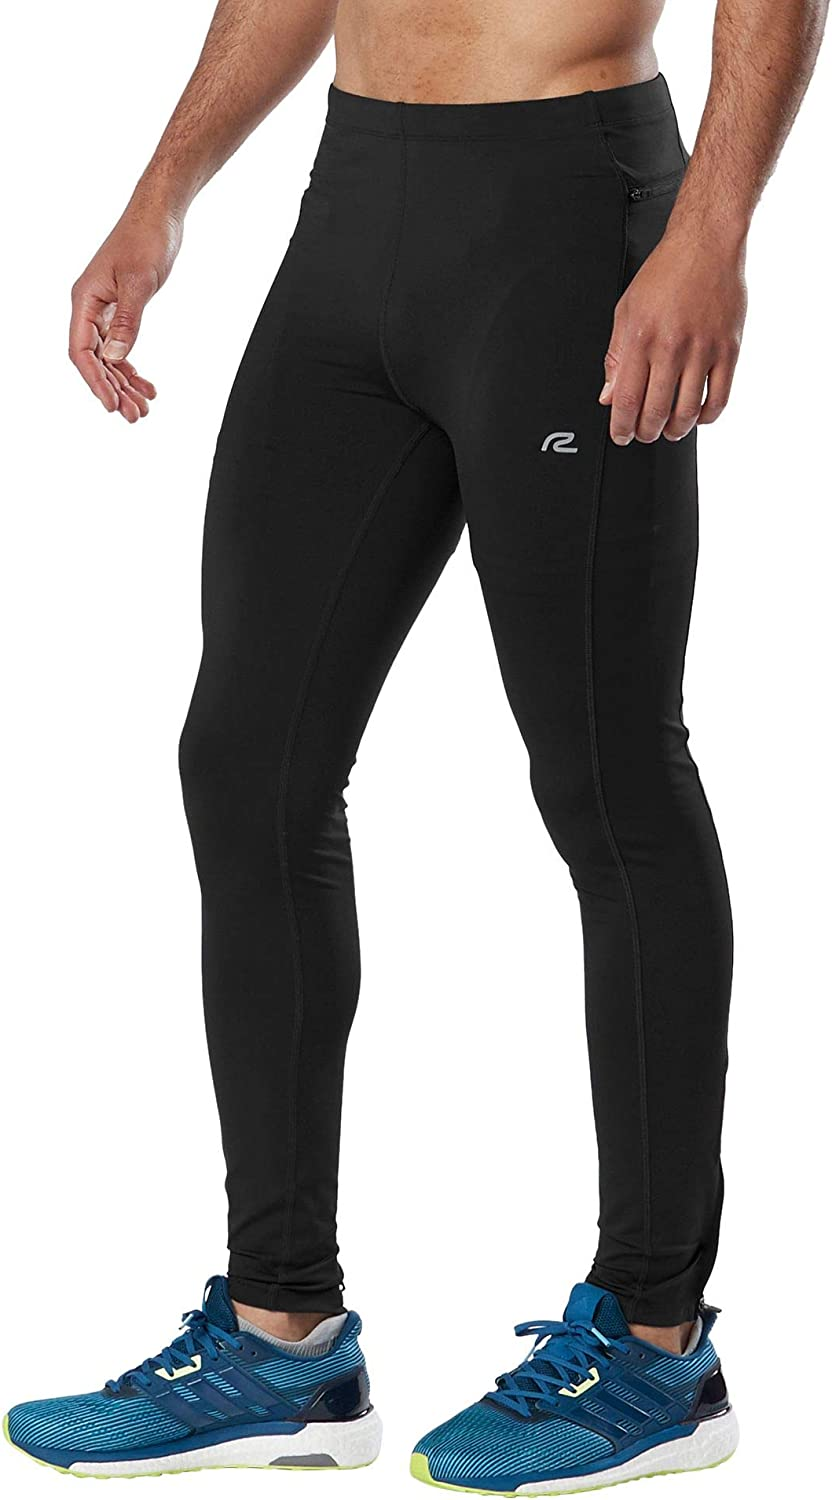 Men's R-Gear Recharge Compression Running Tights with Zipper Pocket and Ankles